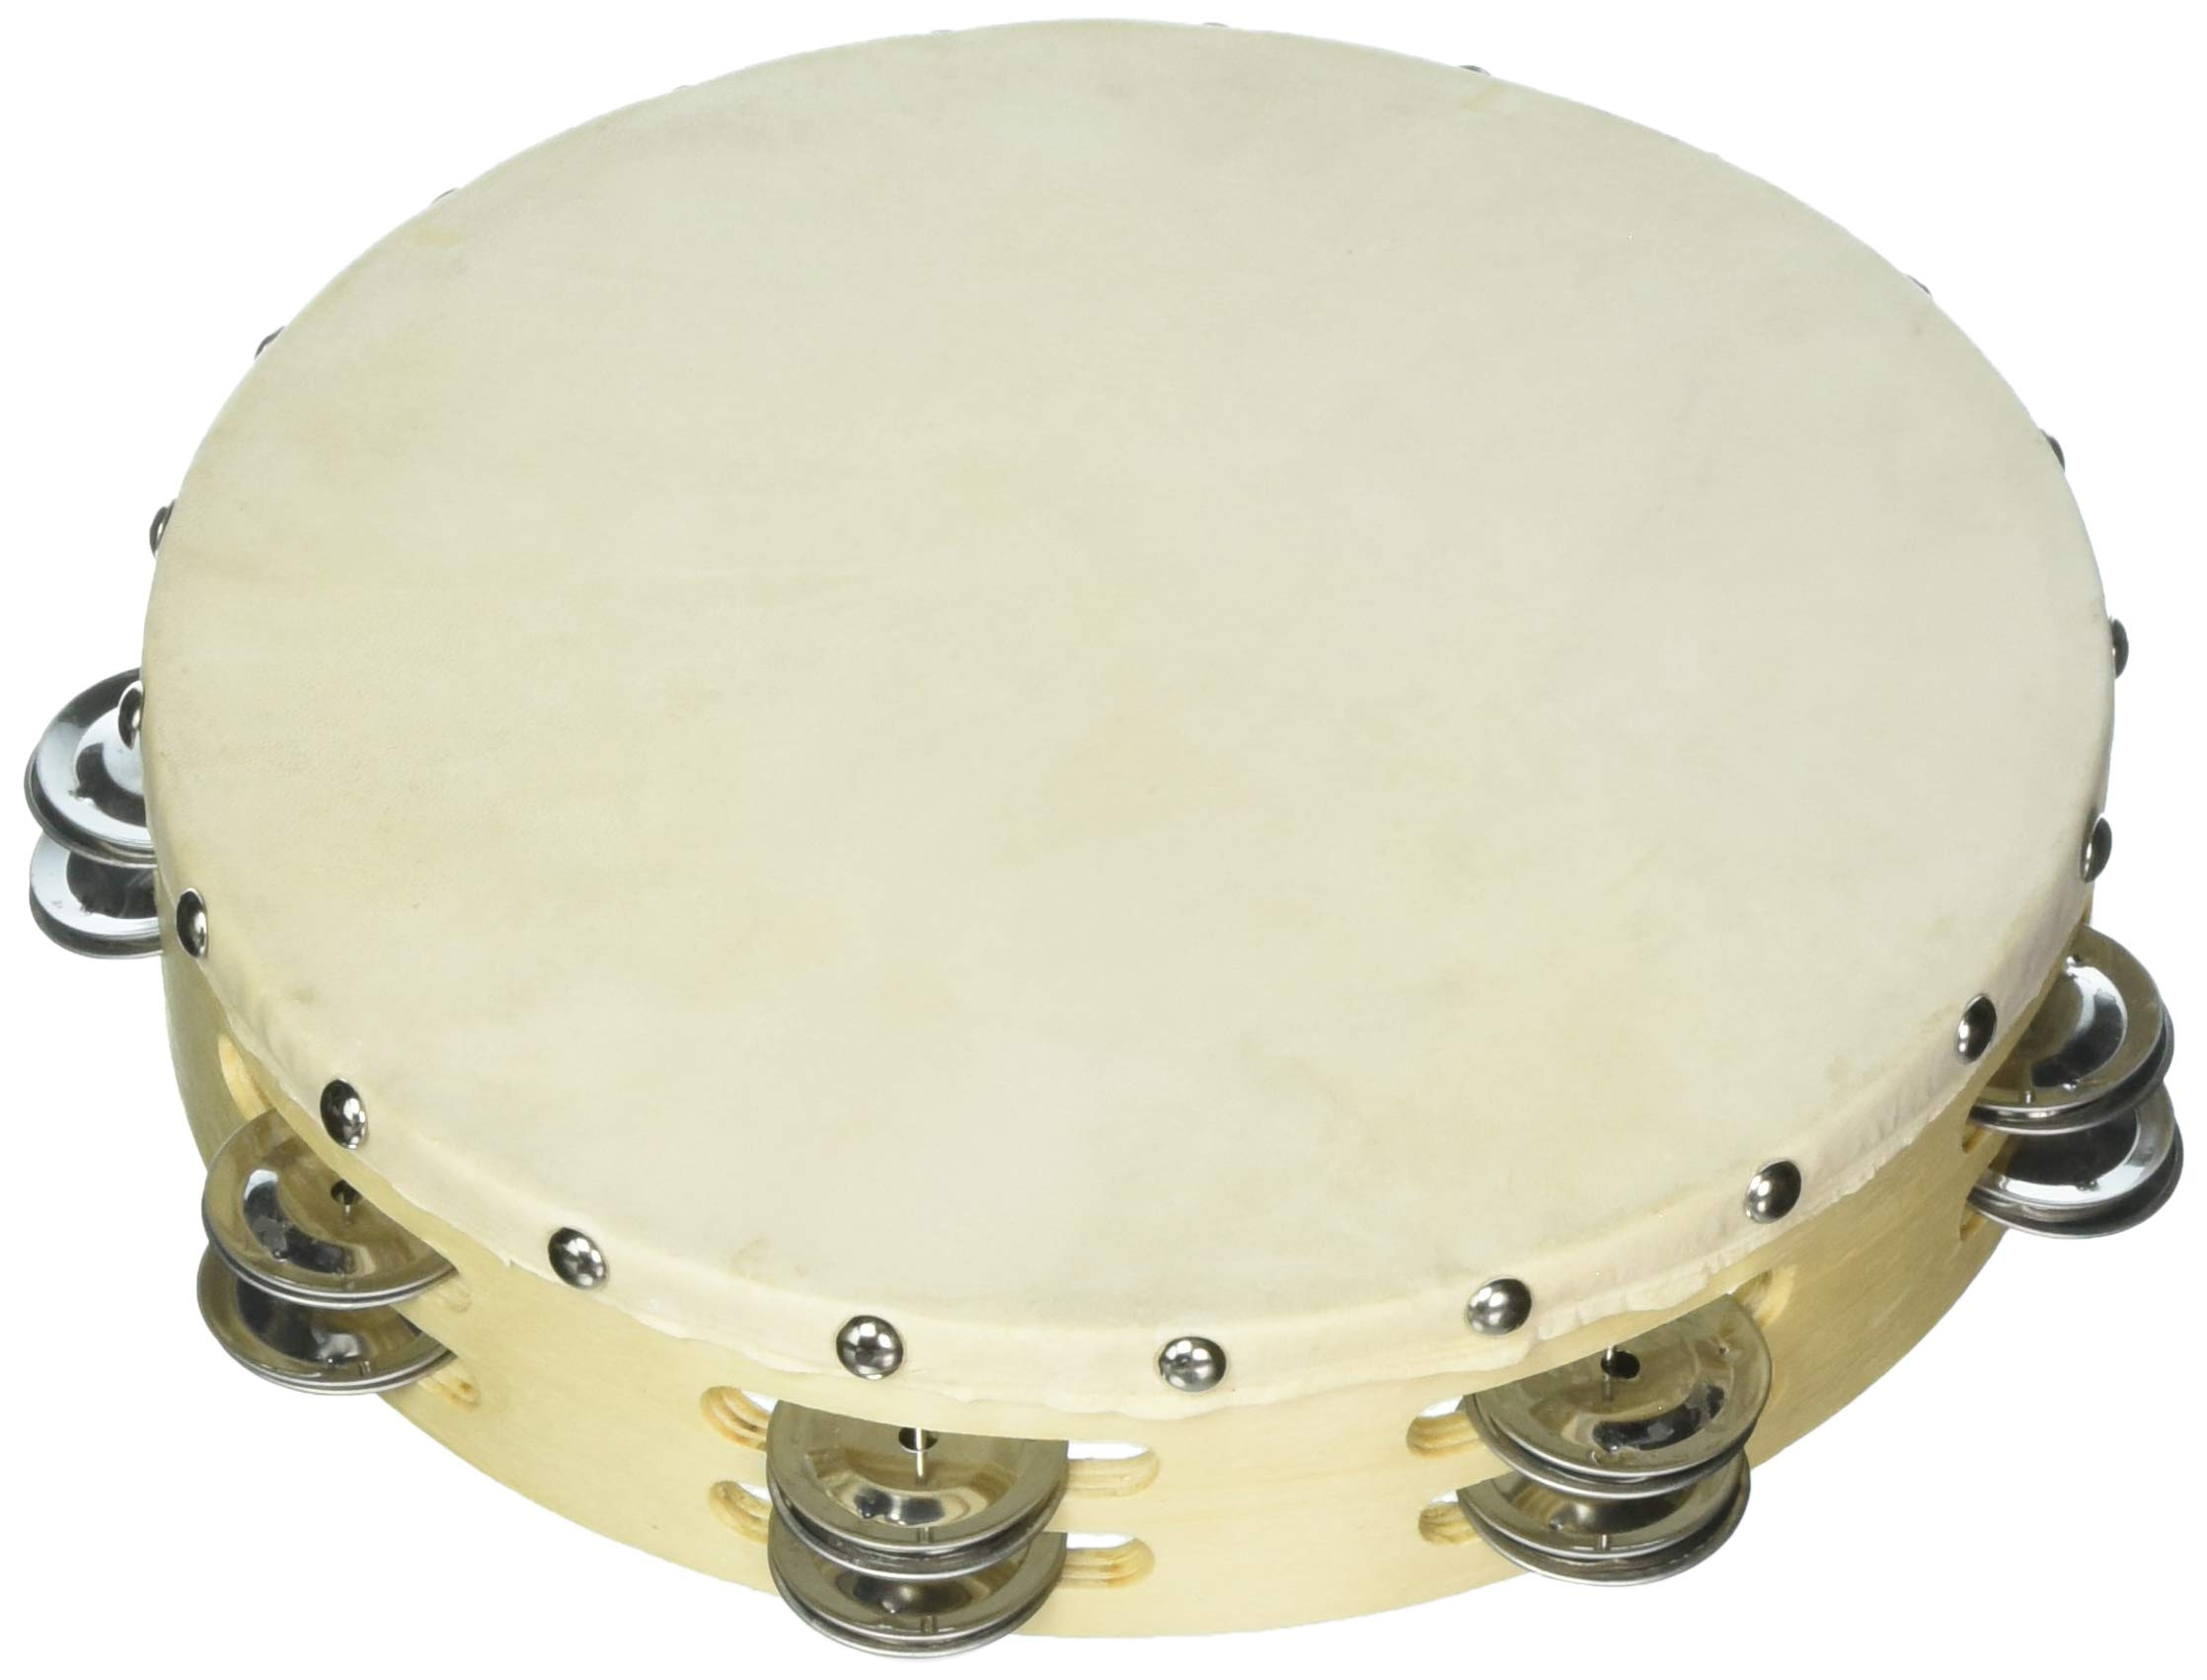 Grover/Trophy B310D Tambourines with Non-Replaceable Skin Head - 10'' Double Row